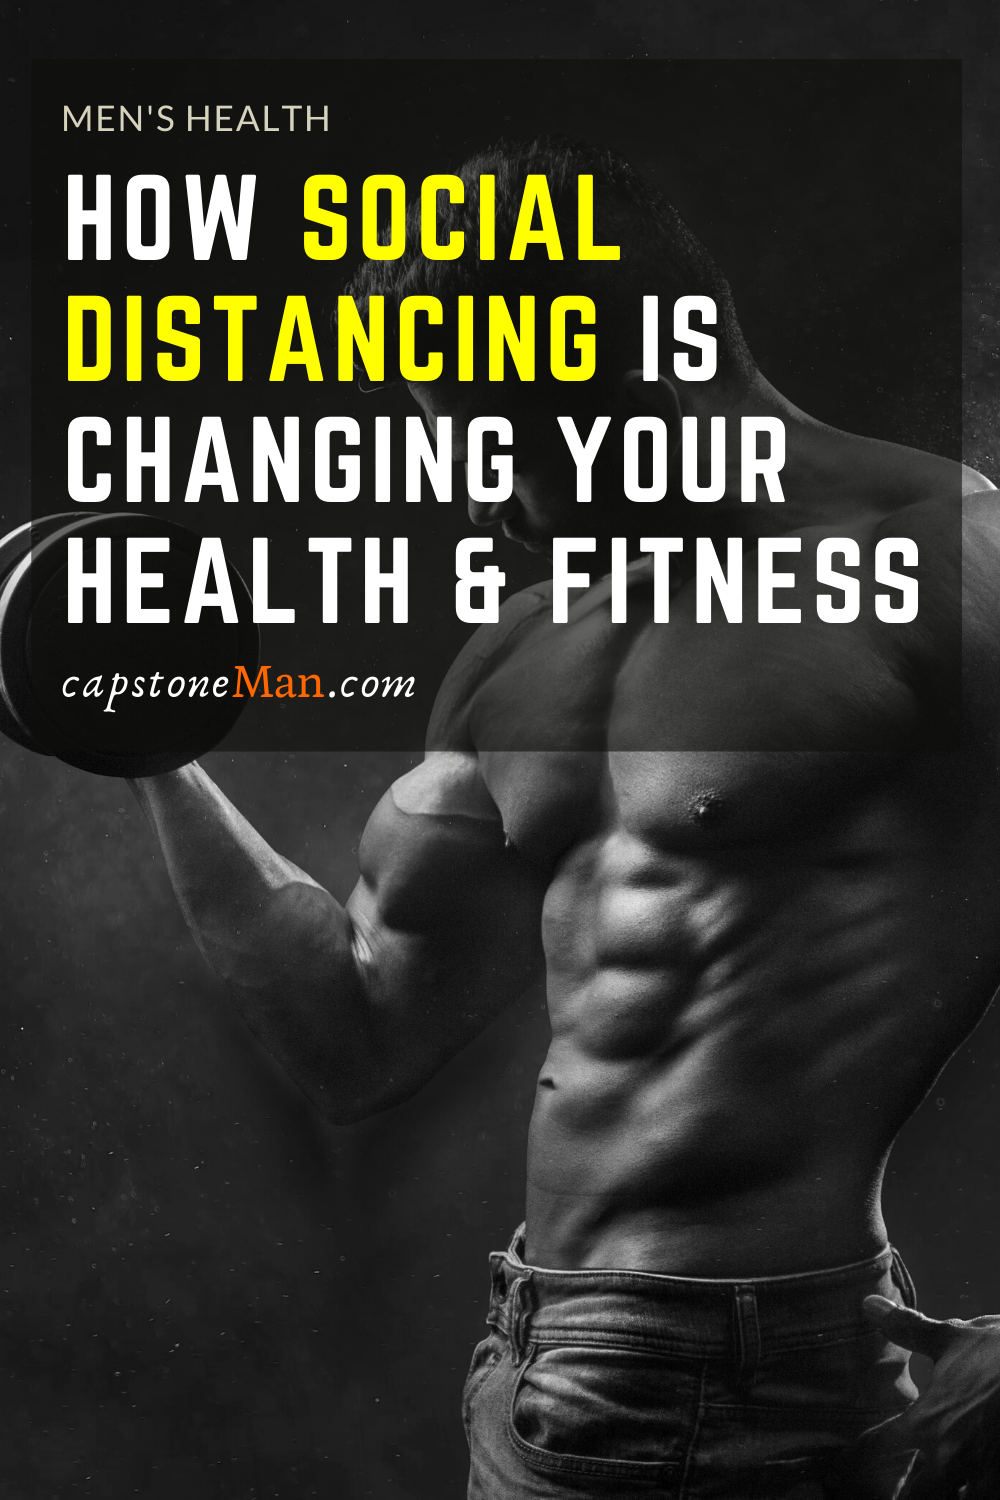 Now that quarantine and social distancing is in full force, health and fitness is changing in some interesting ways. We review some of these changes.  #health #fitness #healthandfitness #menshealth #socialdistance